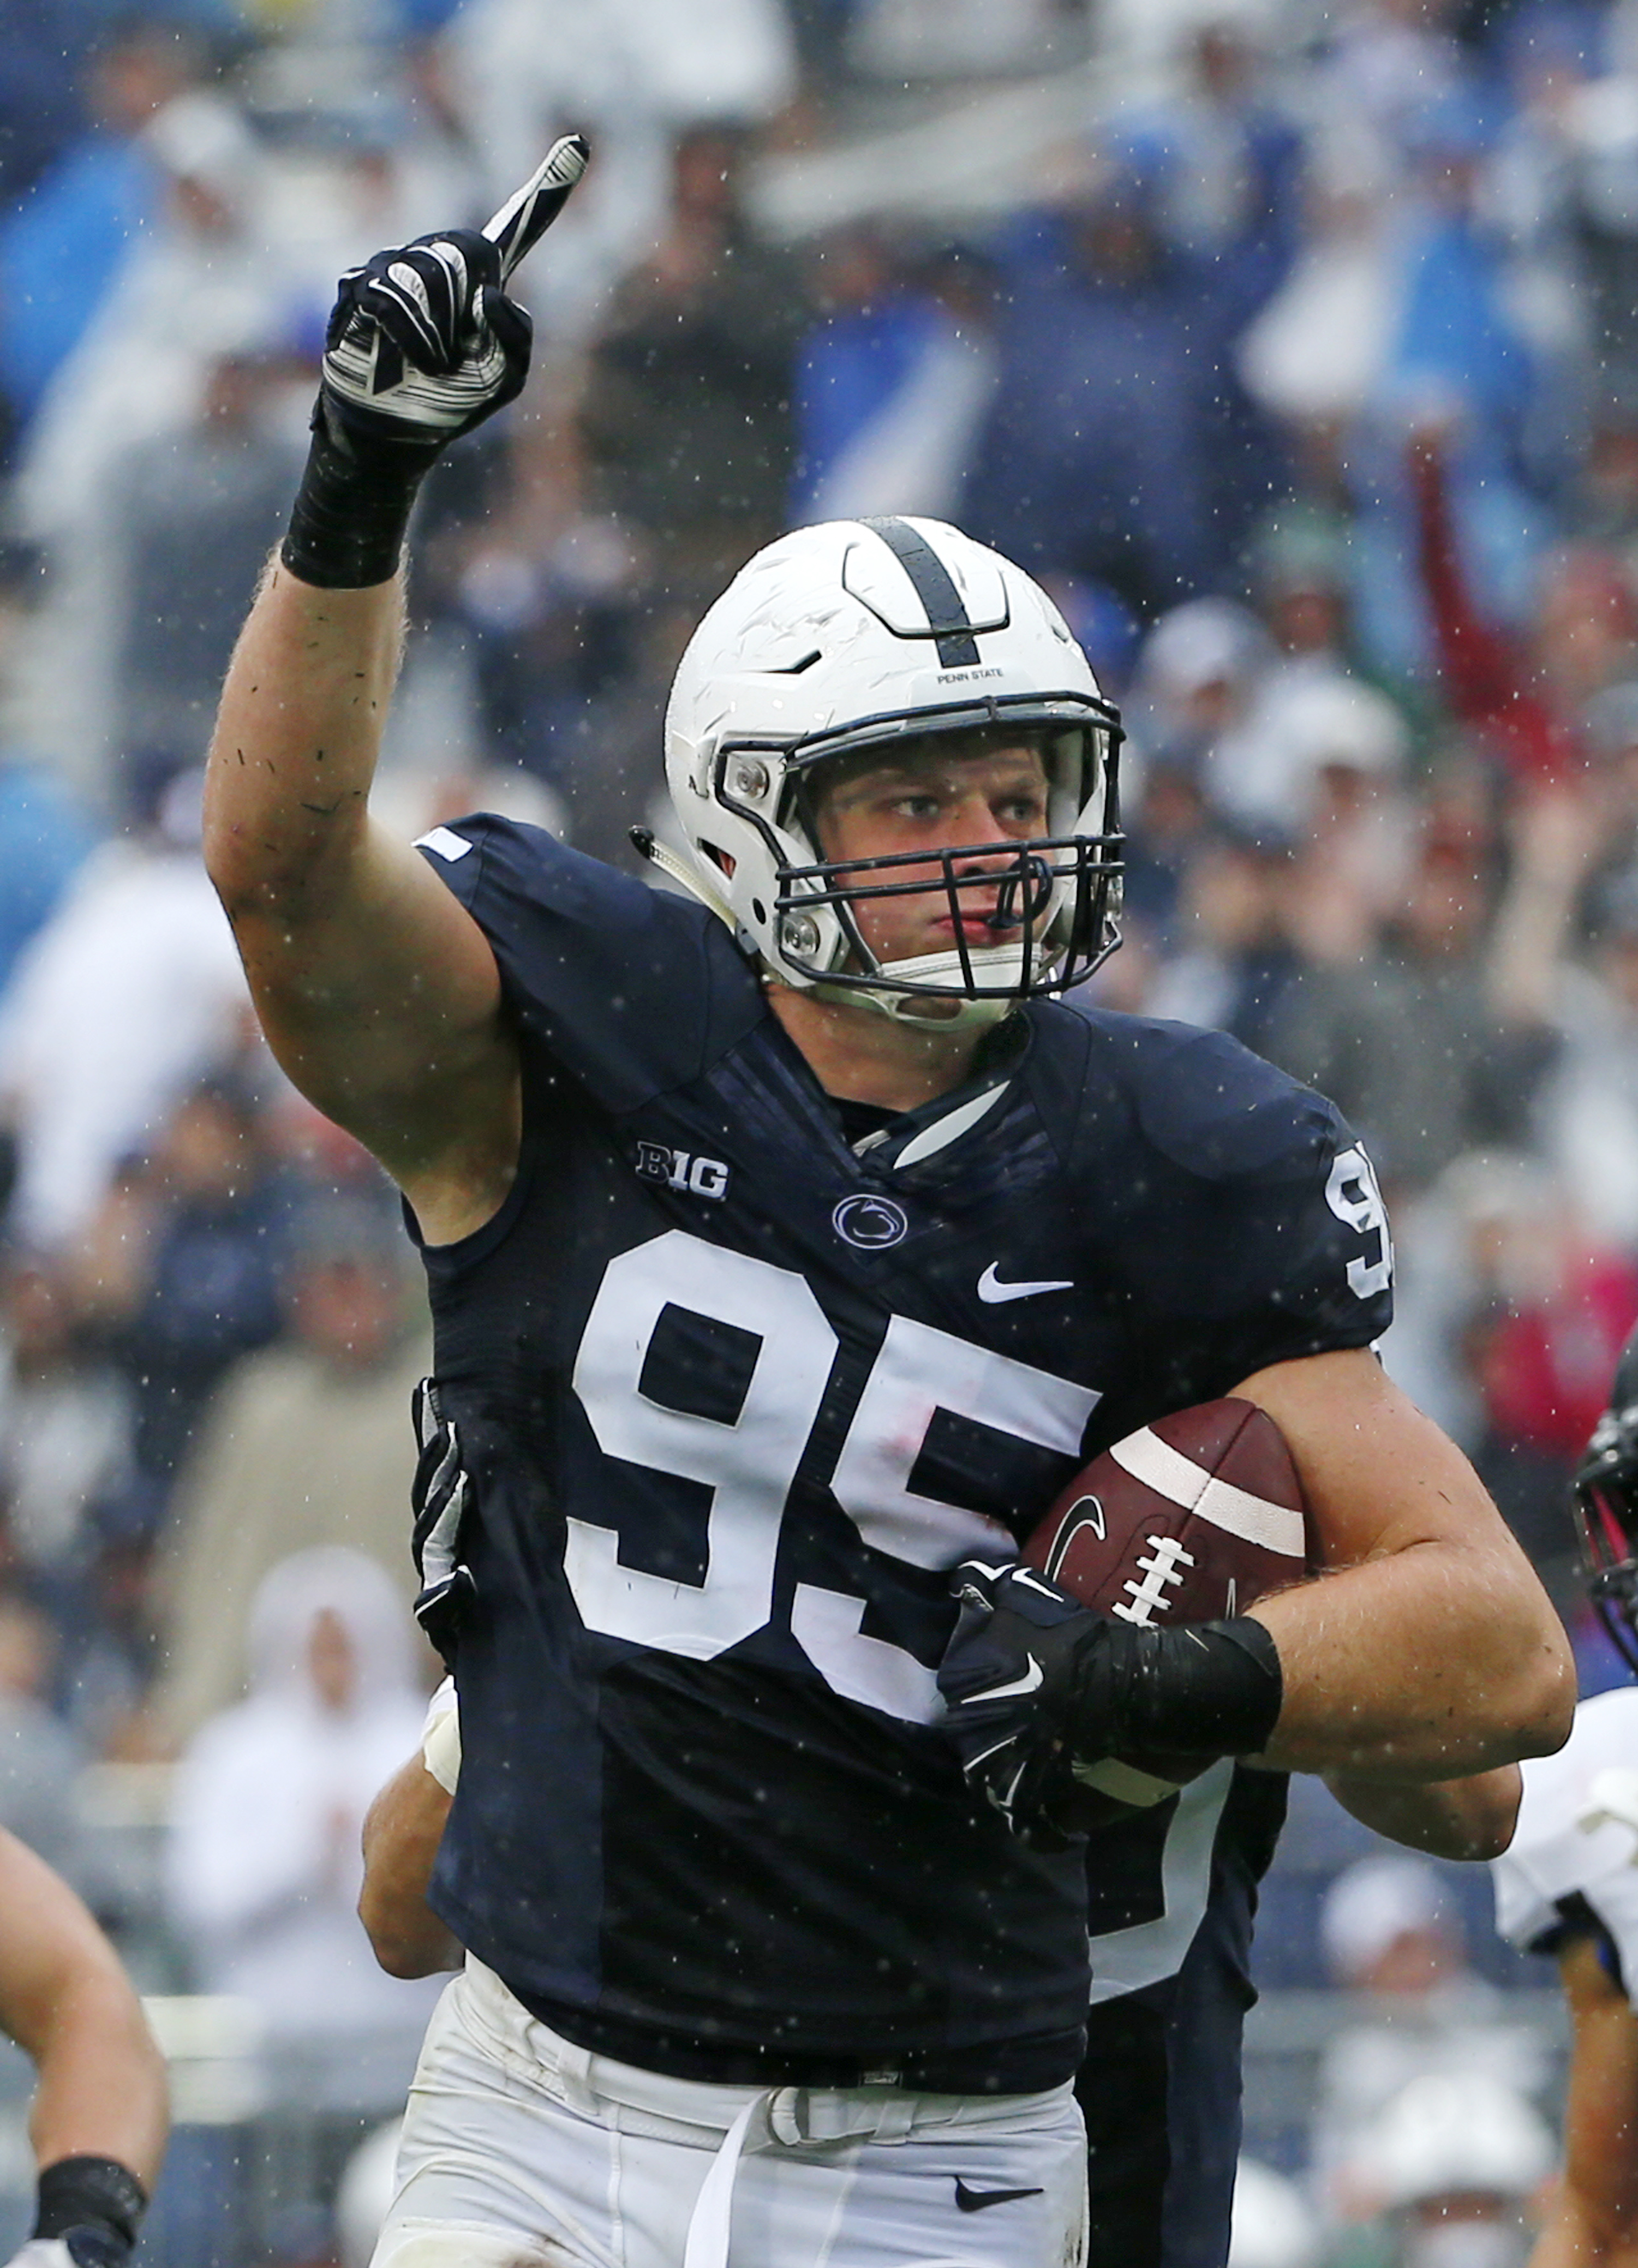 FILE - In this Sept. 12, 2015, file photo, Penn State defensive end Carl Nassib celebrates his interception during an NCAA college football game against Buffalo in State College, Pa. Nassib was hurt in a game at Northwestern three weeks ago. He played the